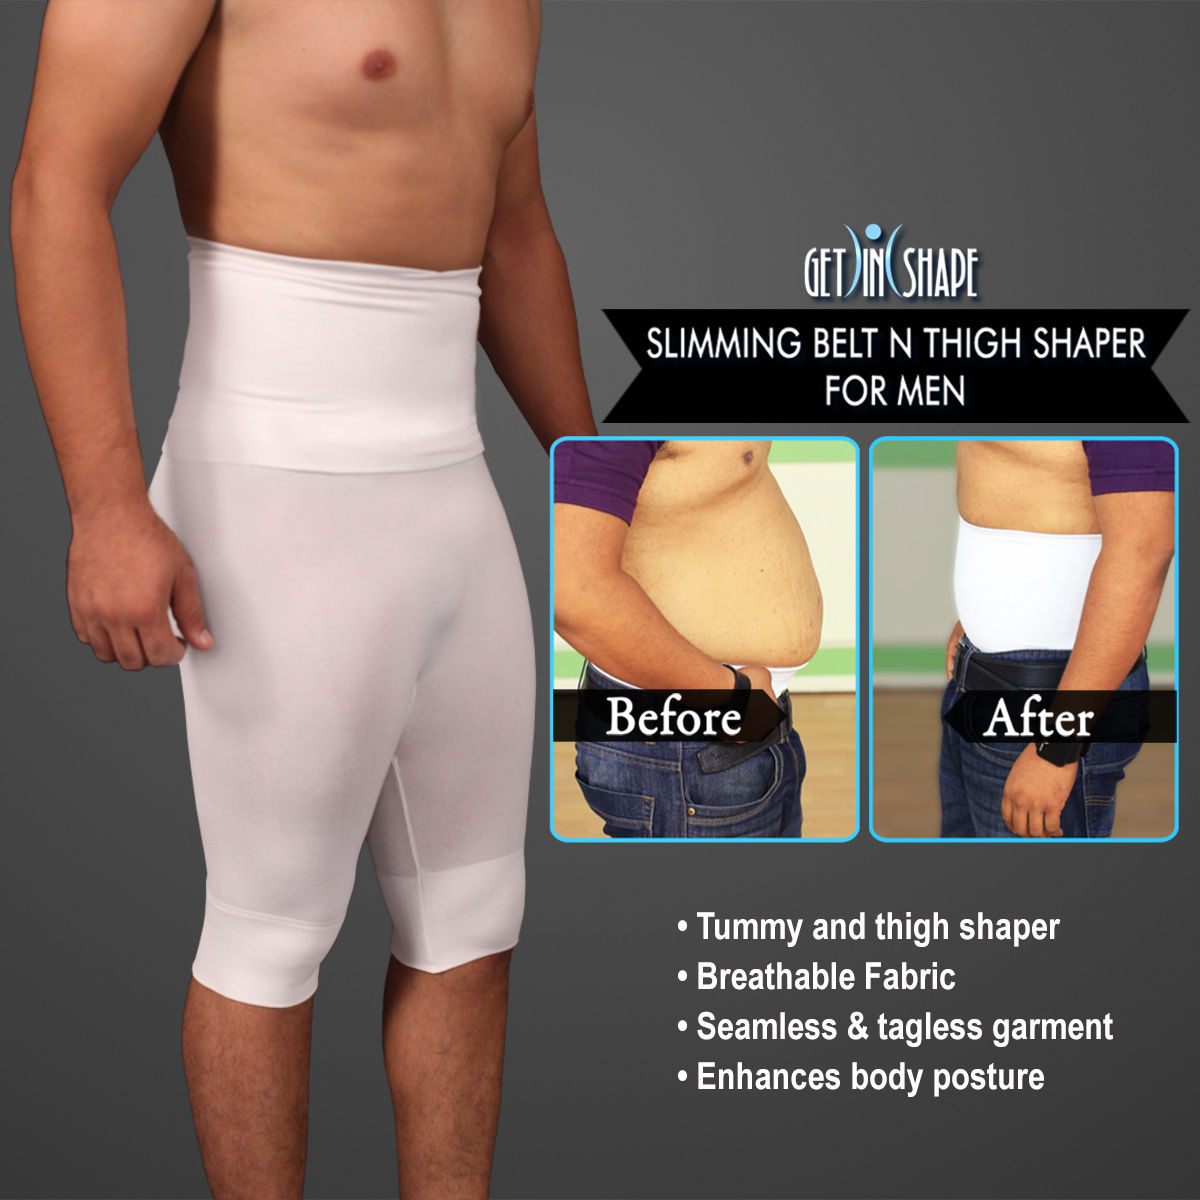 035e532e8b Buy Get In Shape Slimming Belt n Thigh Shaper for Men Online at Best Price  in India on Naaptol.com